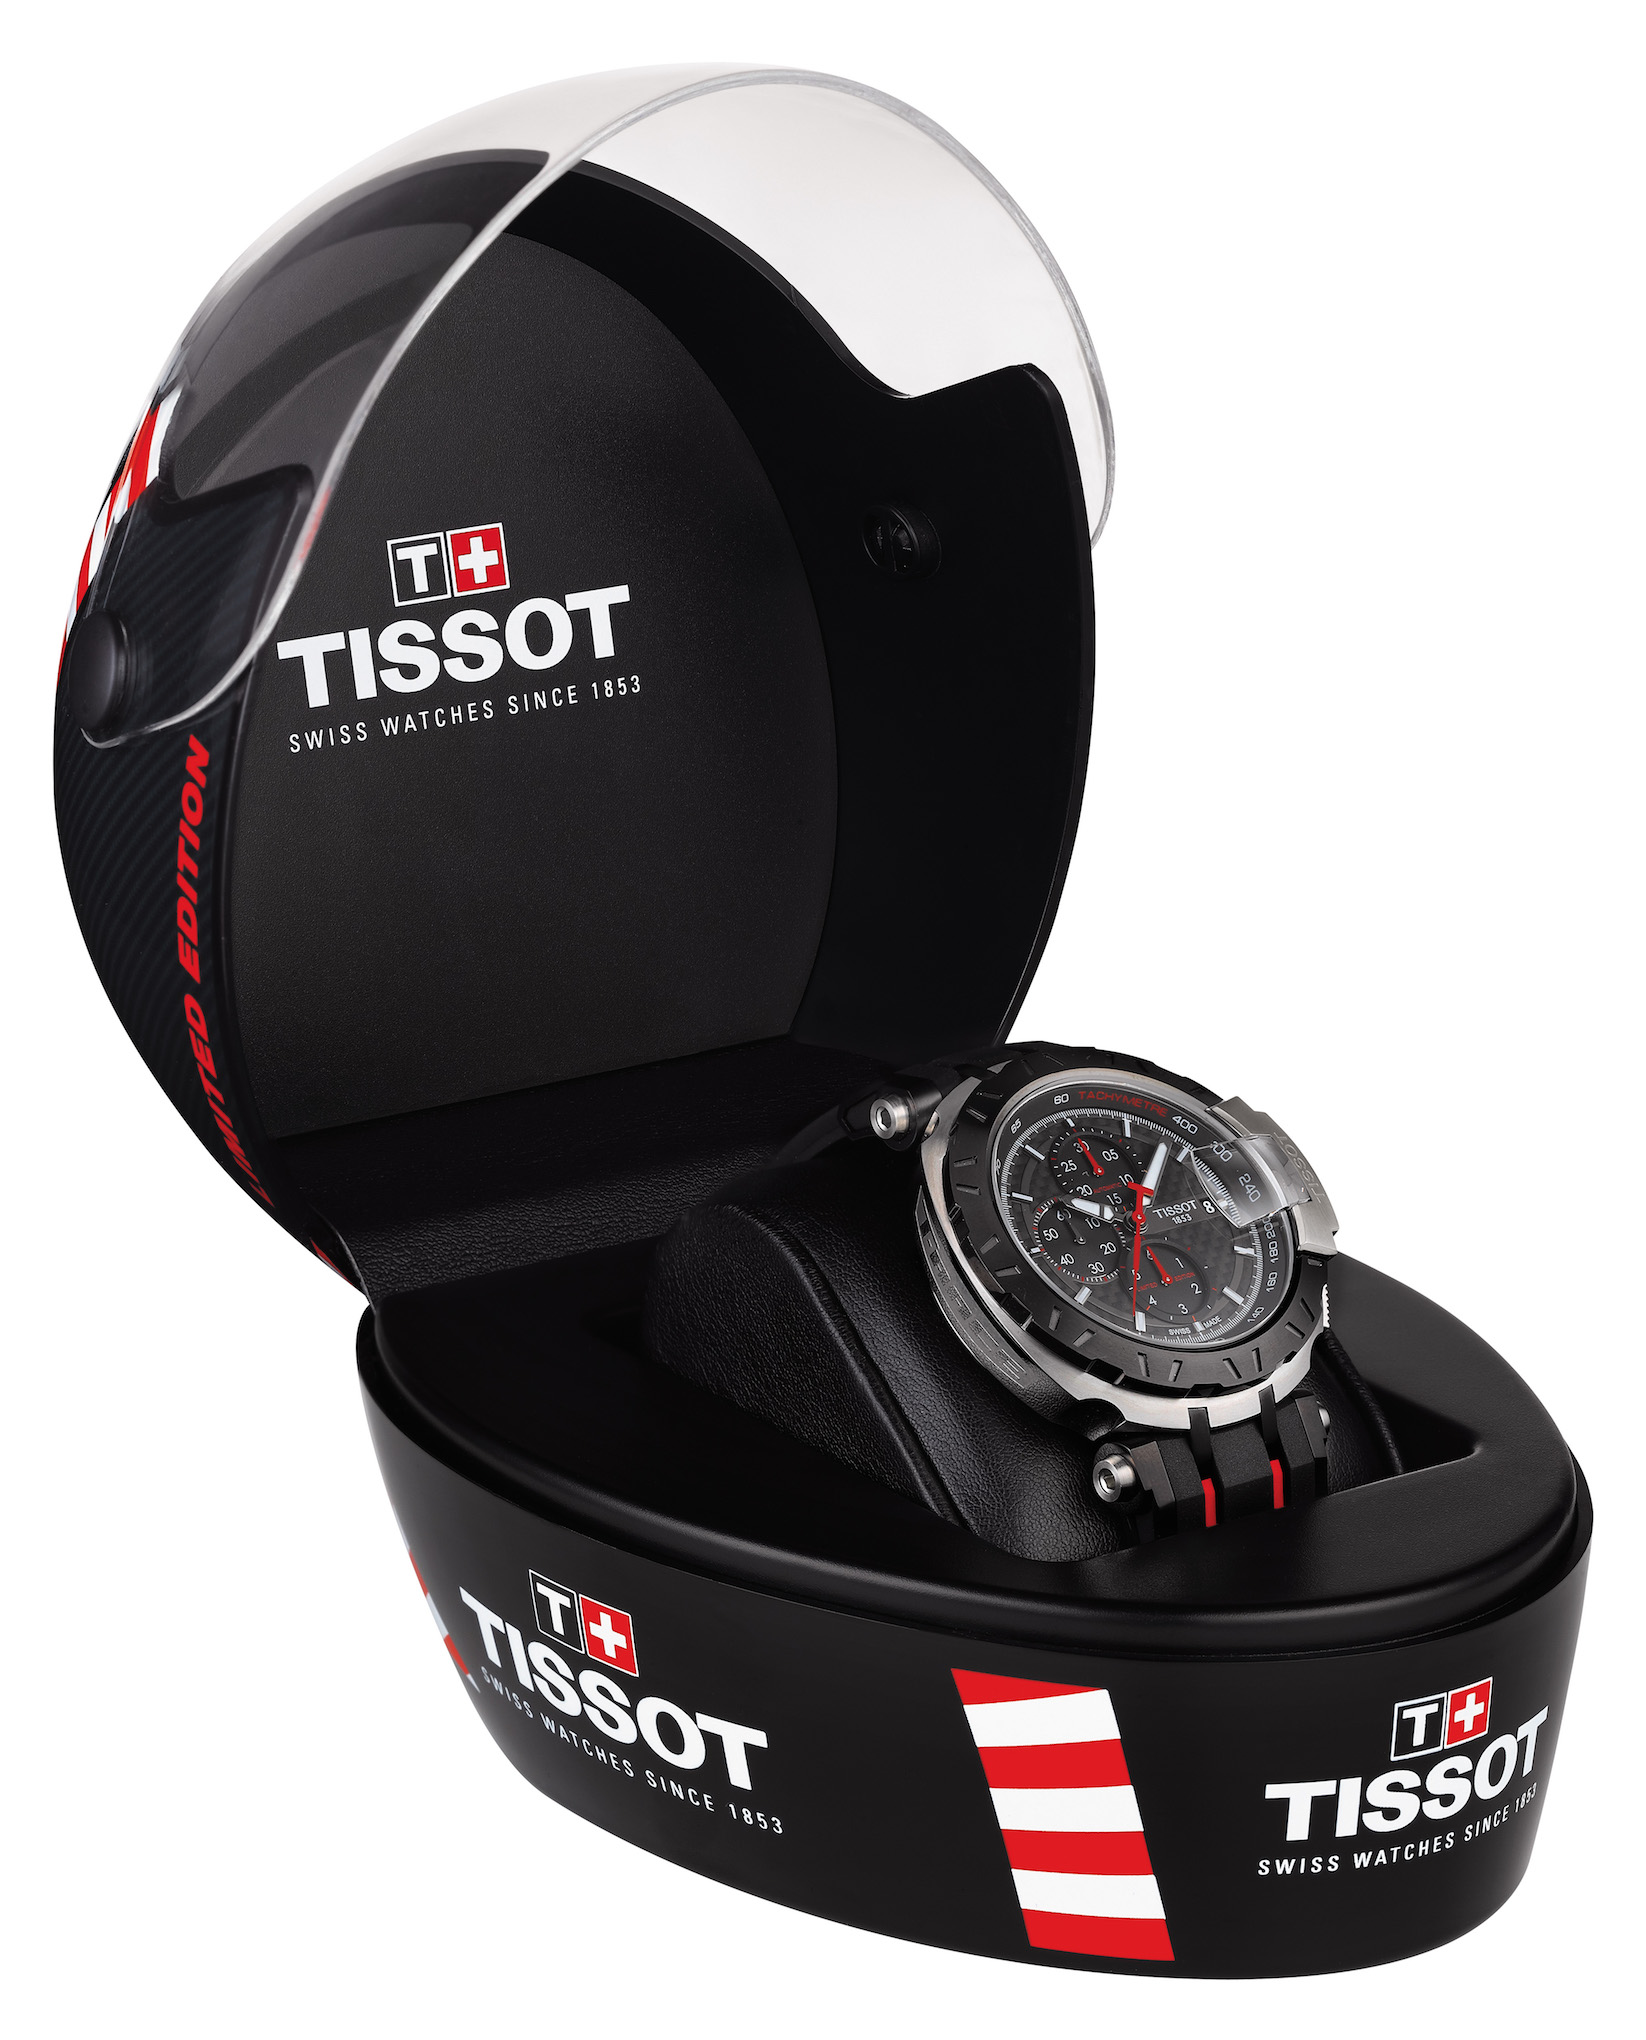 stefan bradl meet and greet and new tissot motogp limited. Black Bedroom Furniture Sets. Home Design Ideas